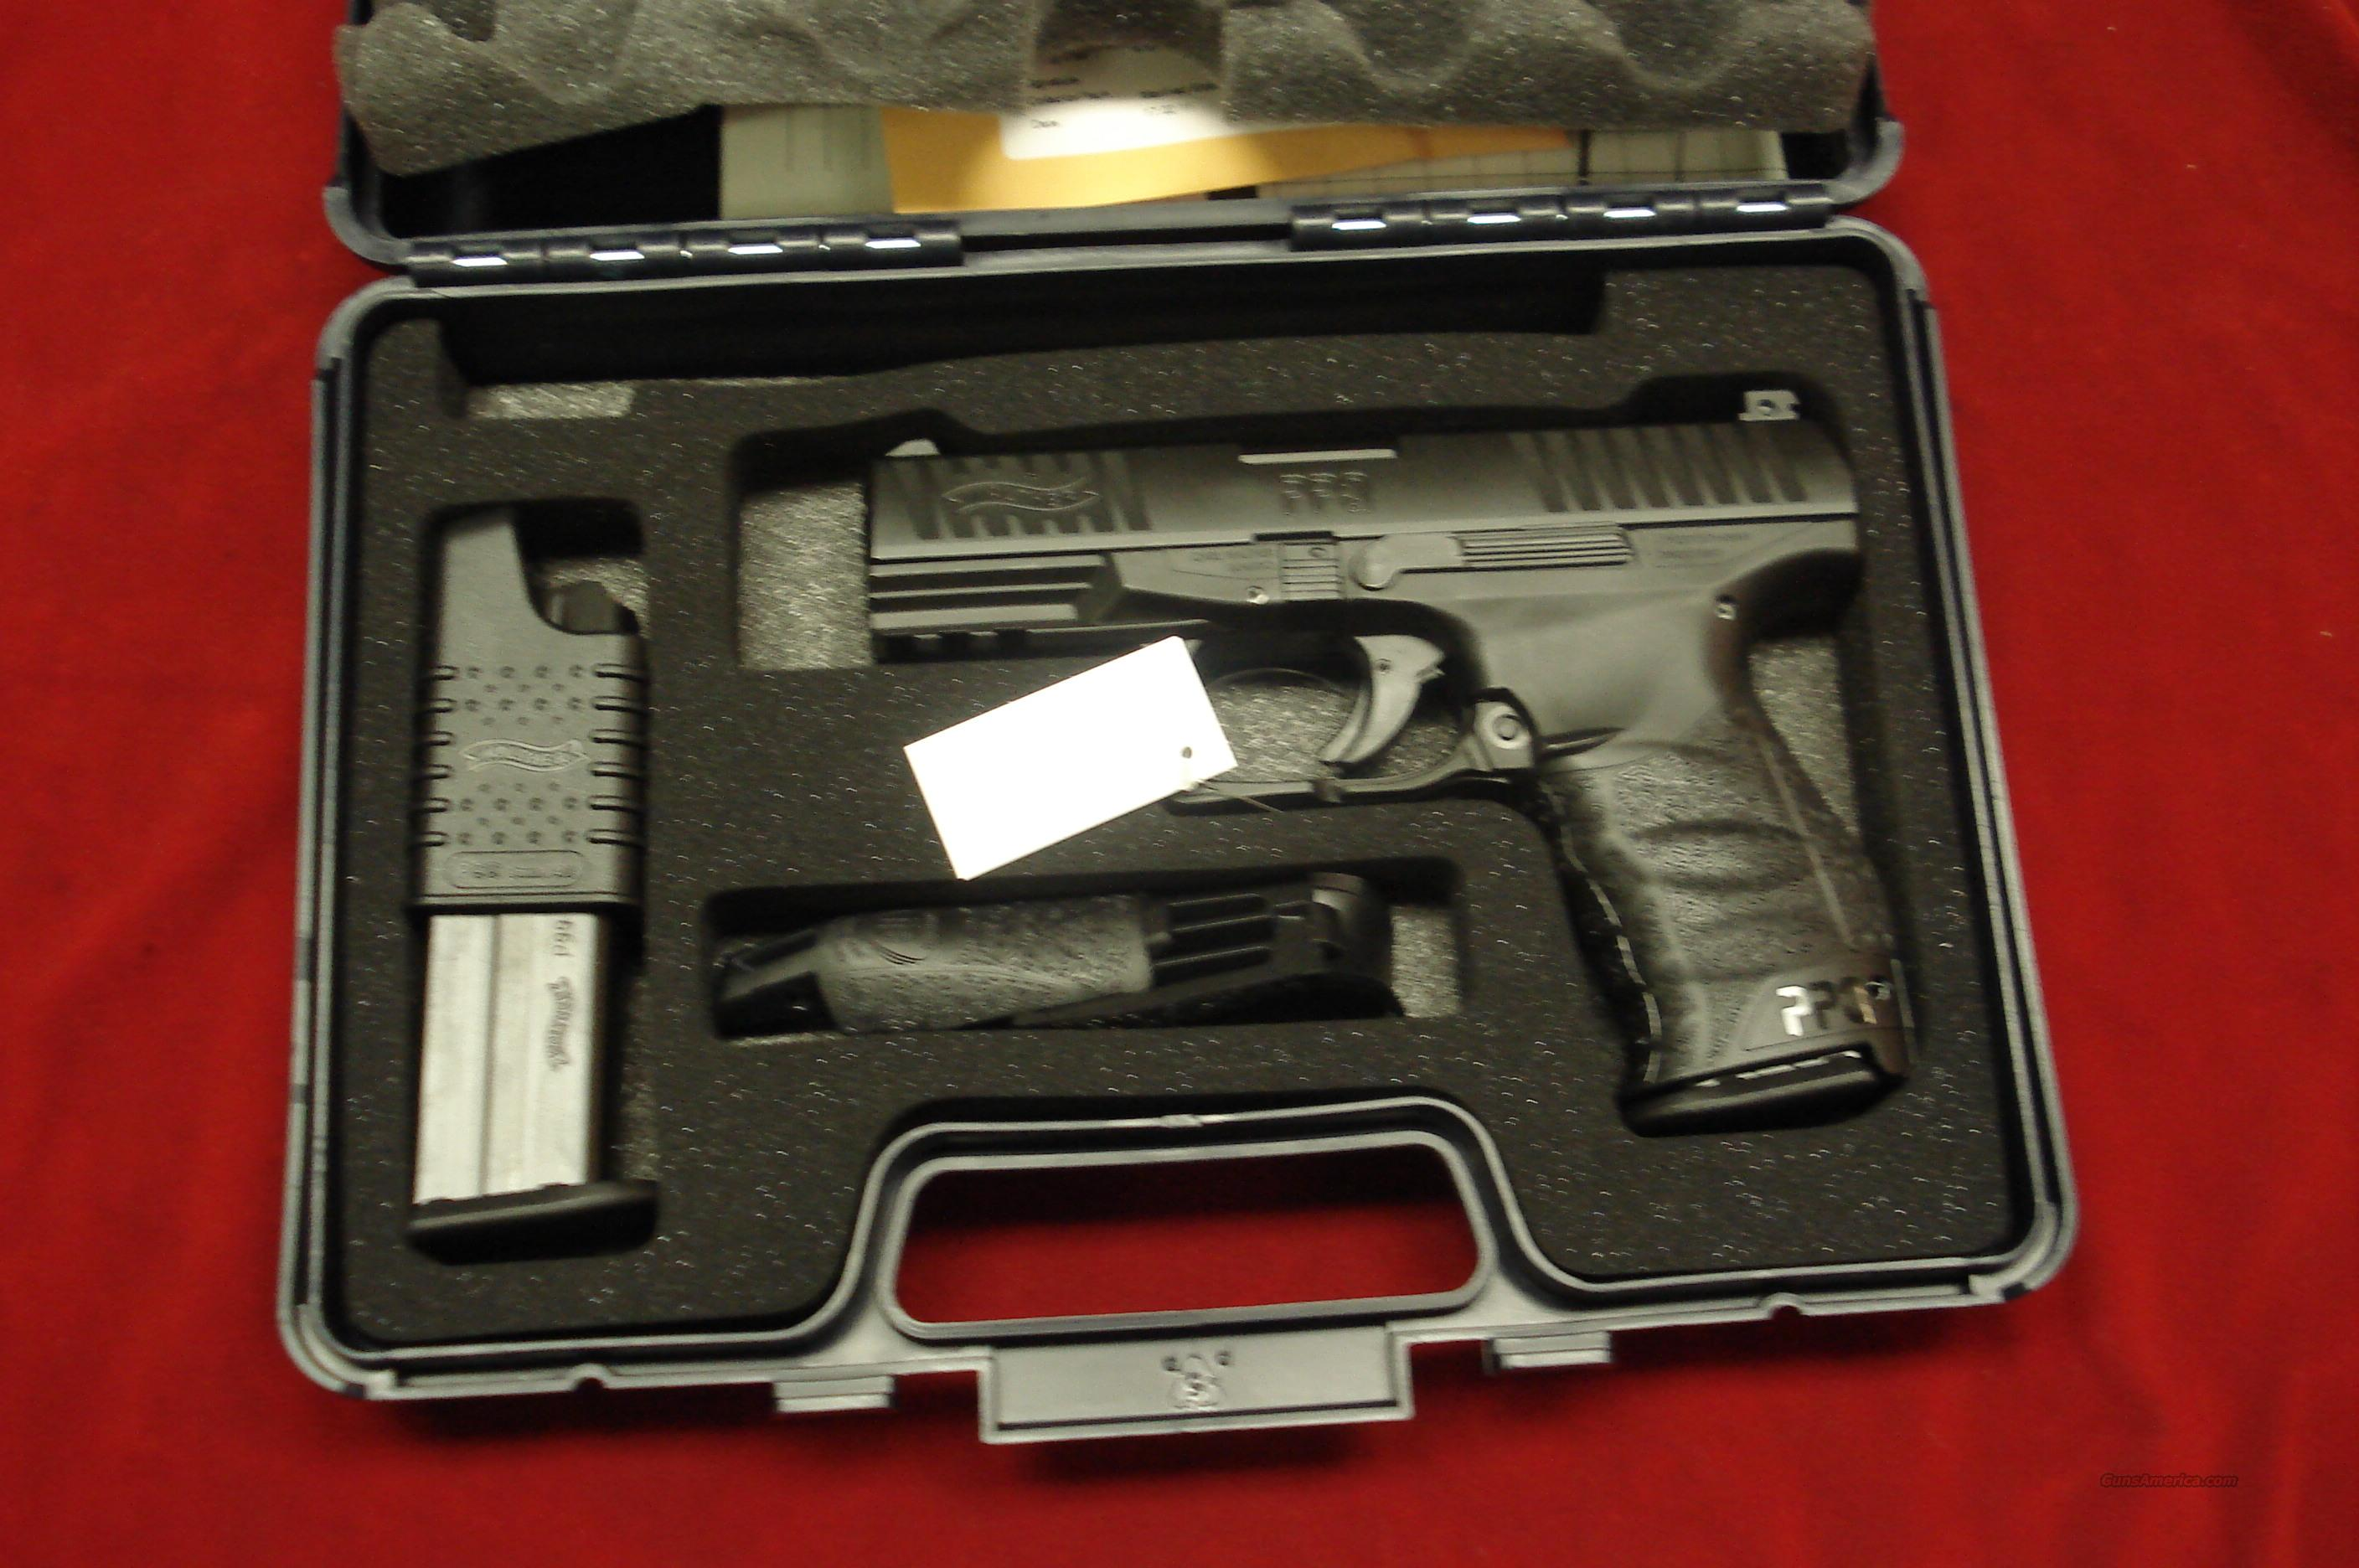 WALTHER PPQ  9MM HIGH CAPACITY NEW  Guns > Pistols > Walther Pistols > Post WWII > PPK Series